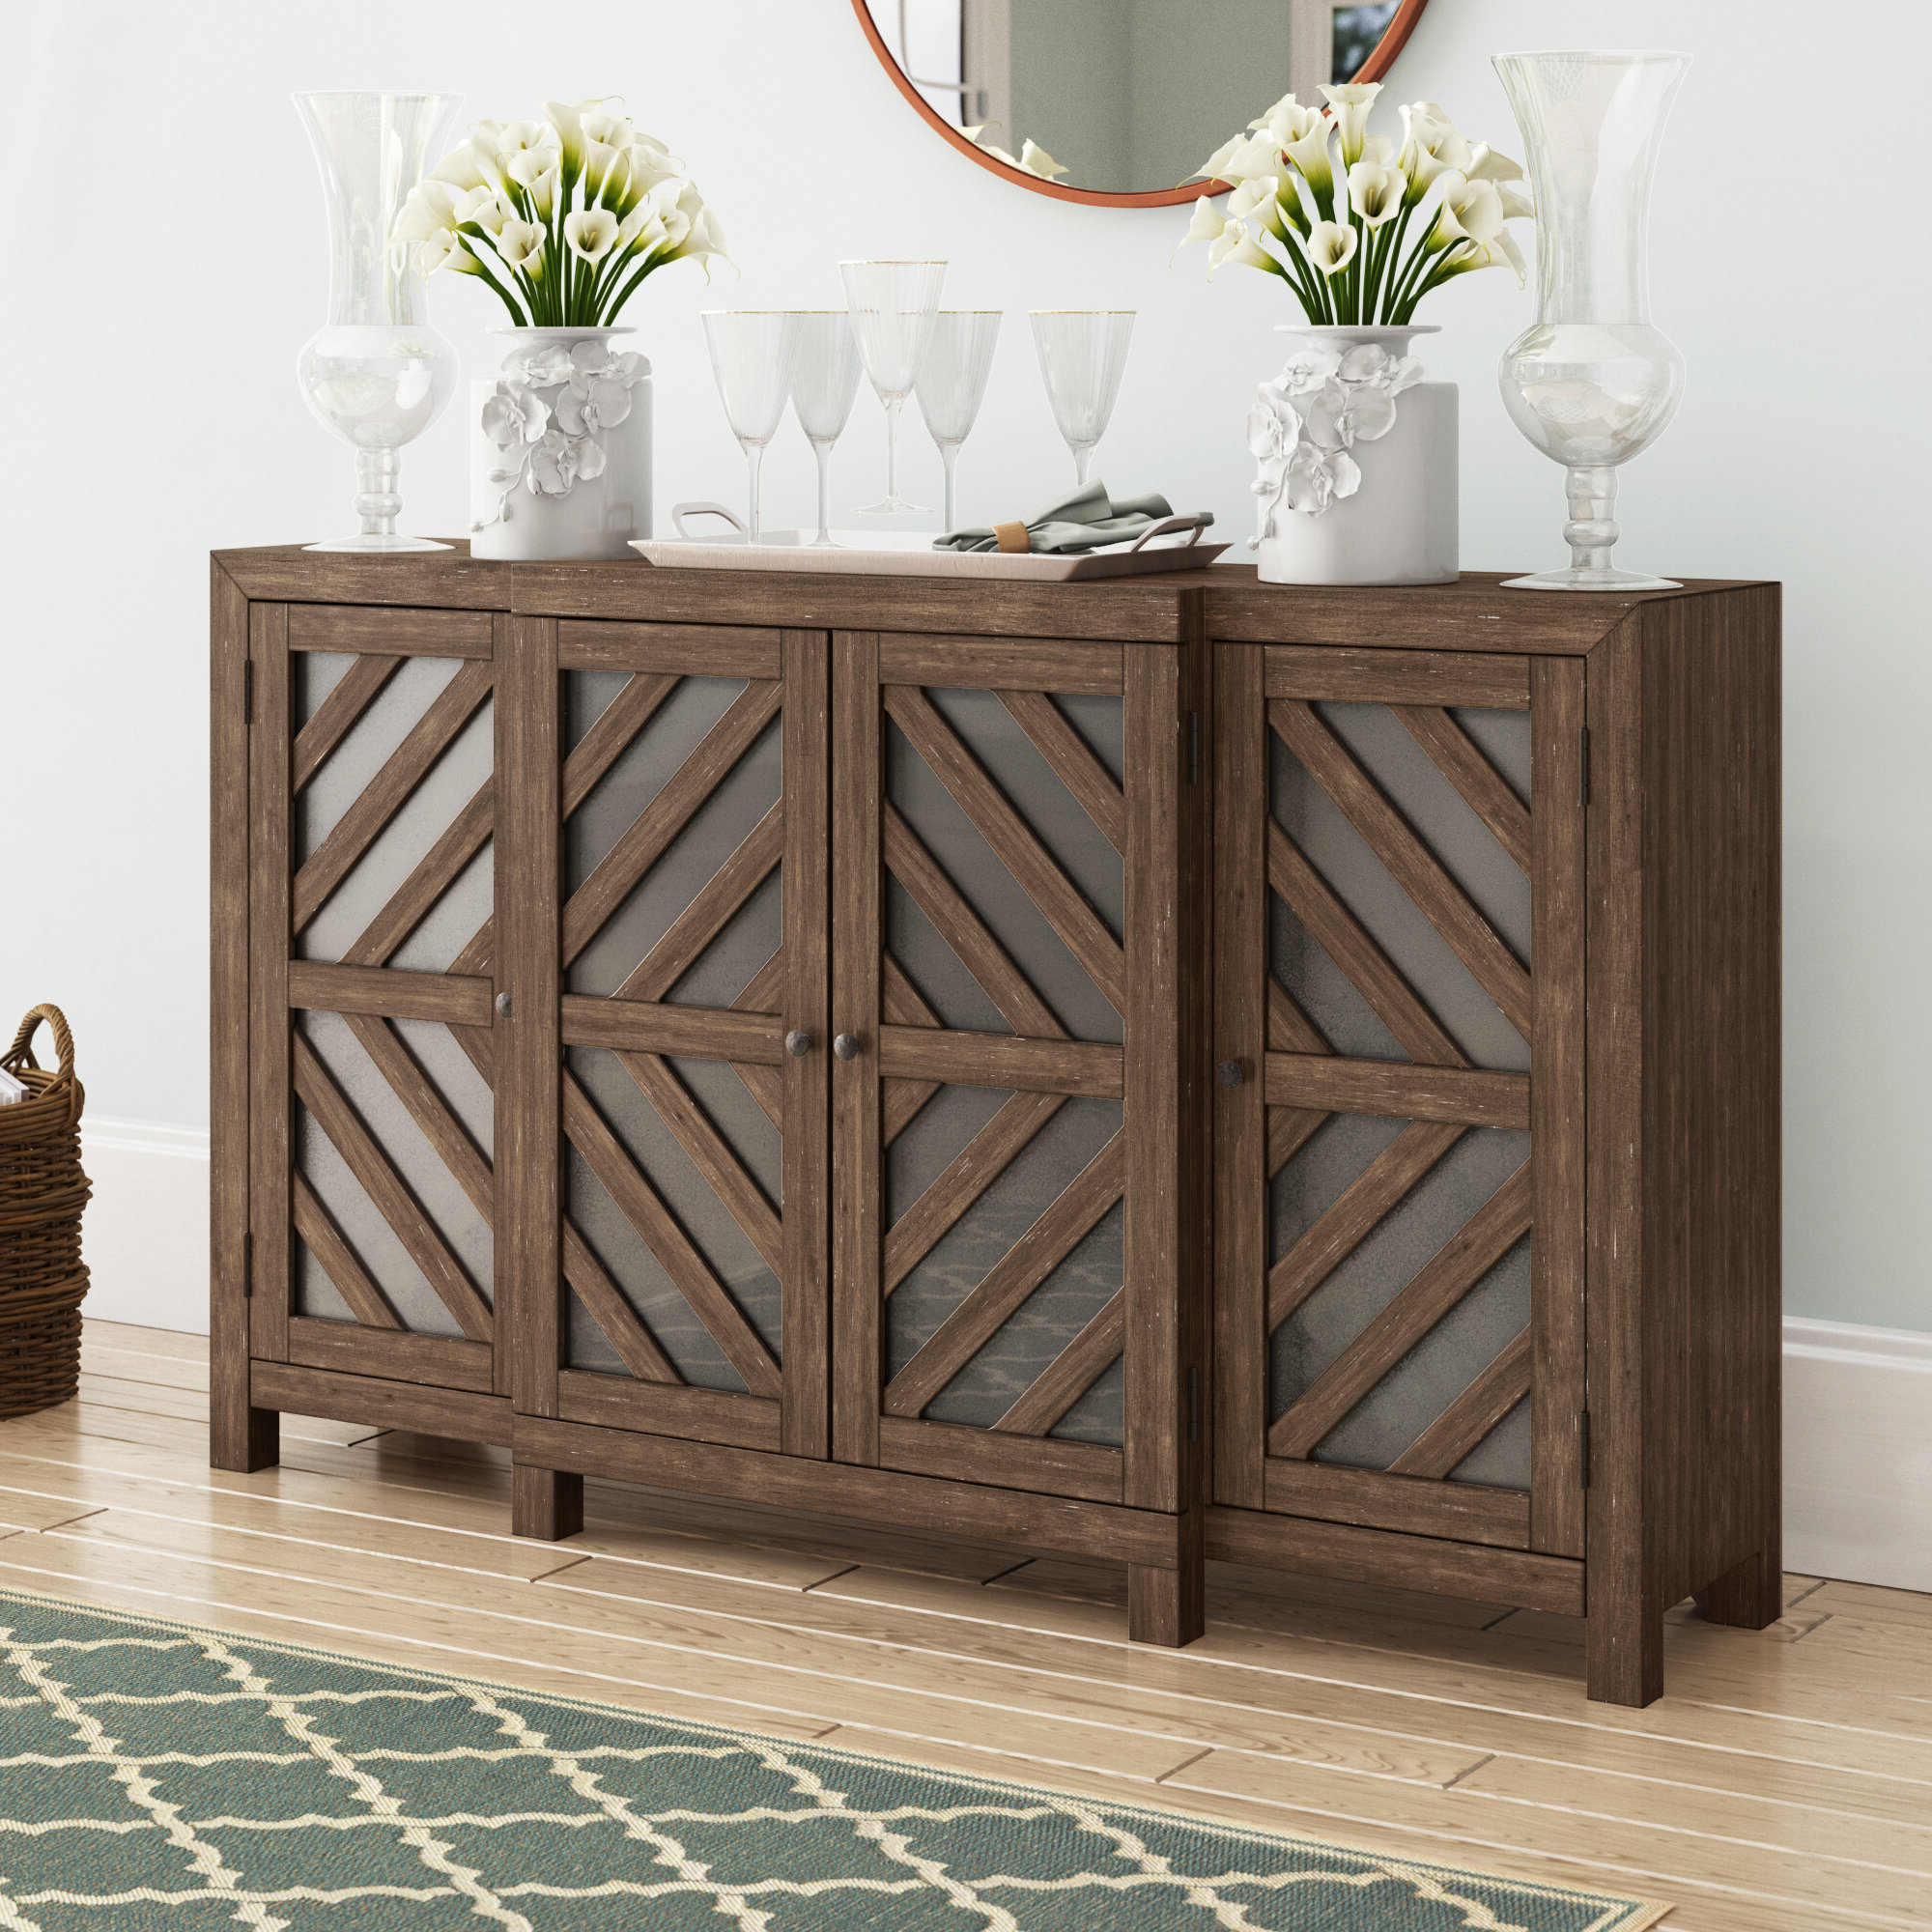 Trendy 70 Inch Credenza You'll Love In  (View 18 of 20)